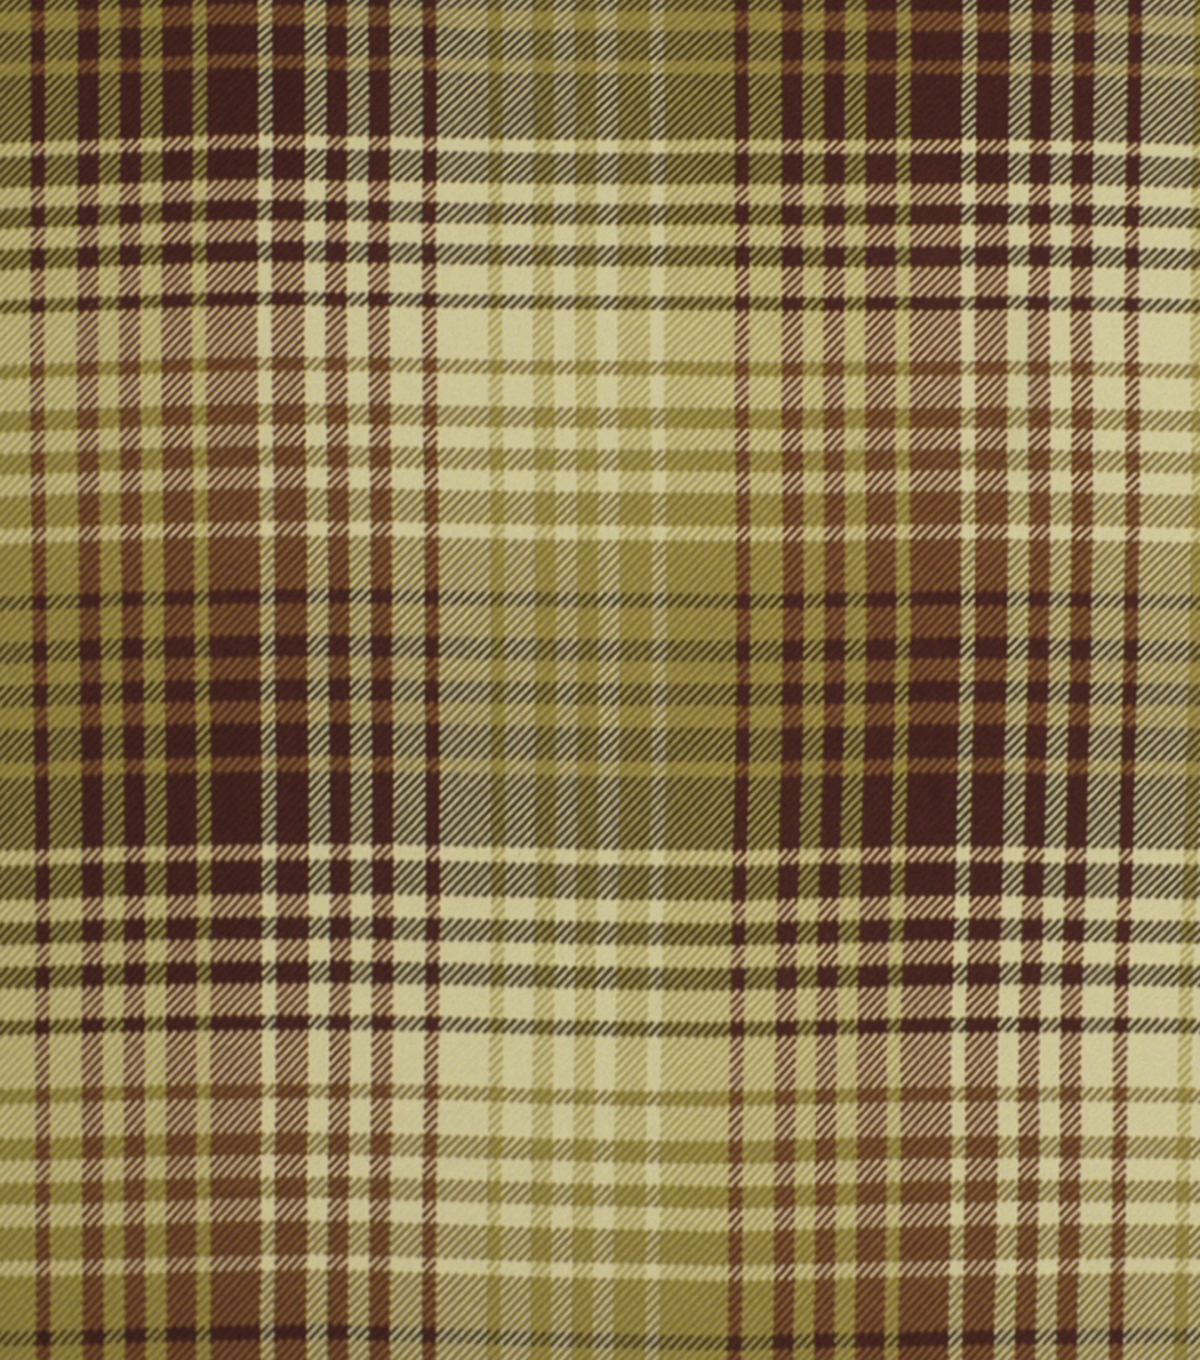 Home Decor 8\u0022x8\u0022 Fabric Swatch-Robert Allen Luxe Plaid Tuscan Red